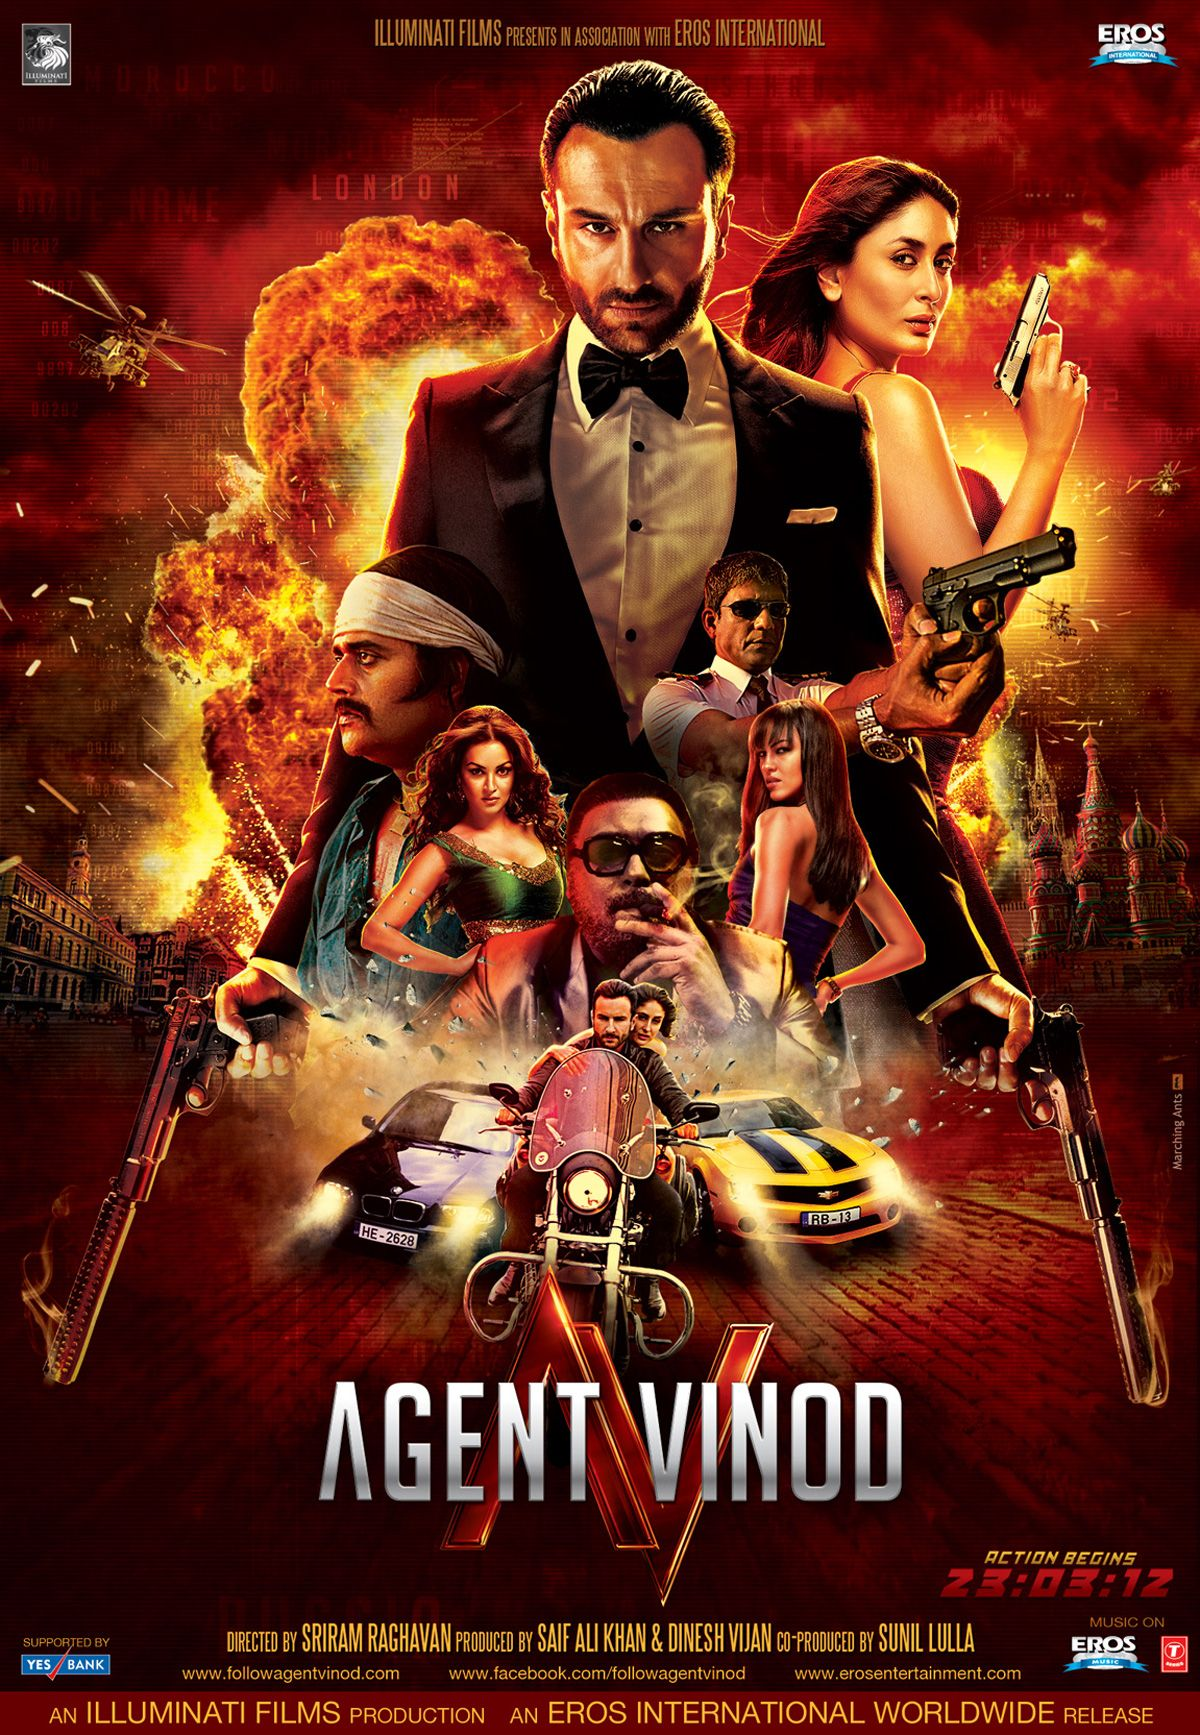 Agent Vinod Again 2012 Movie Full Movies Online Free Indian Movies